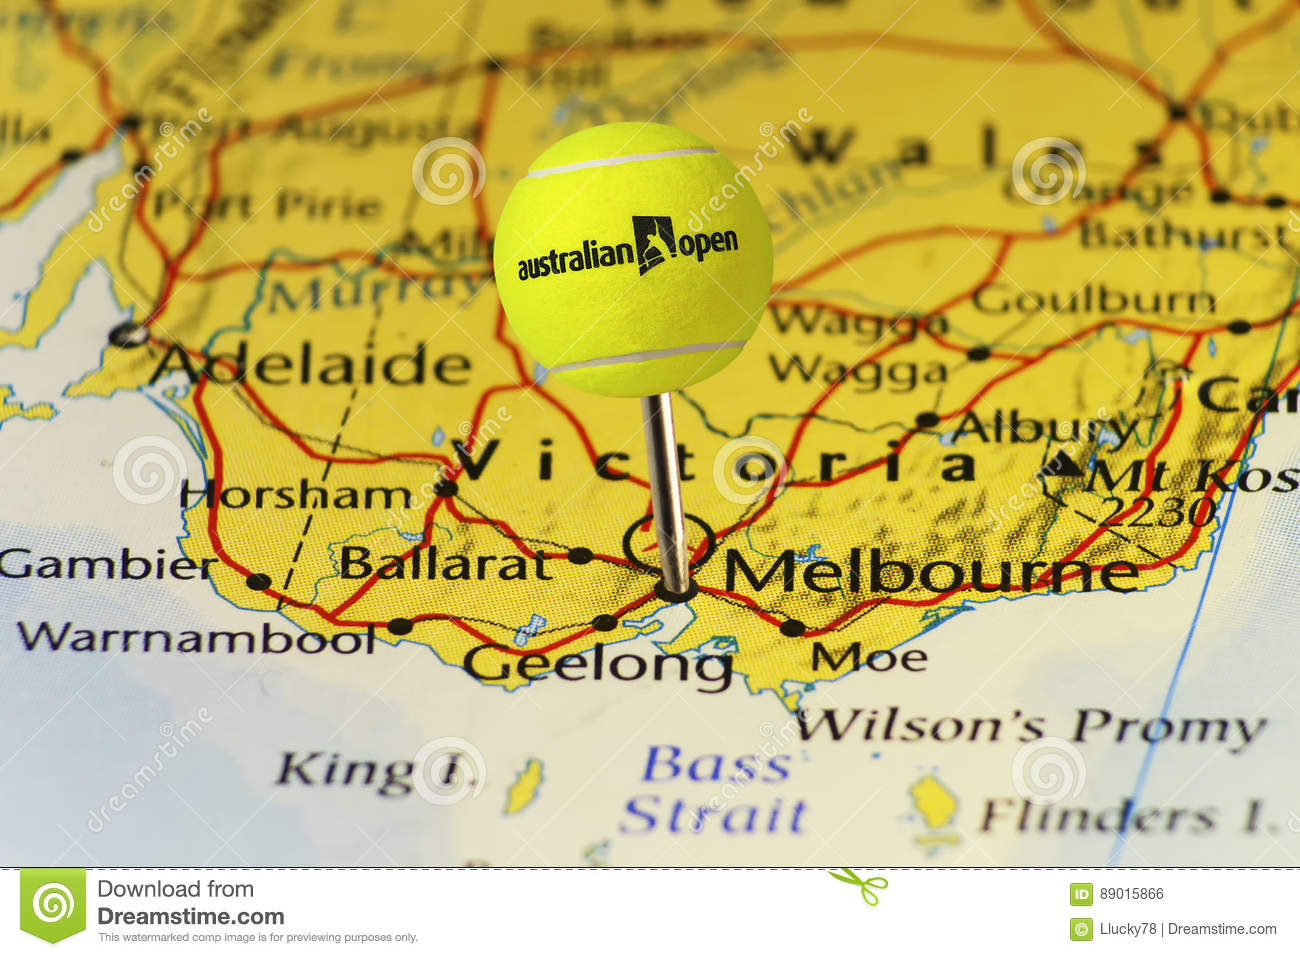 Map Of Australia 2016.2016 Australian Open Official Tennis Ball As Pin On Map Of